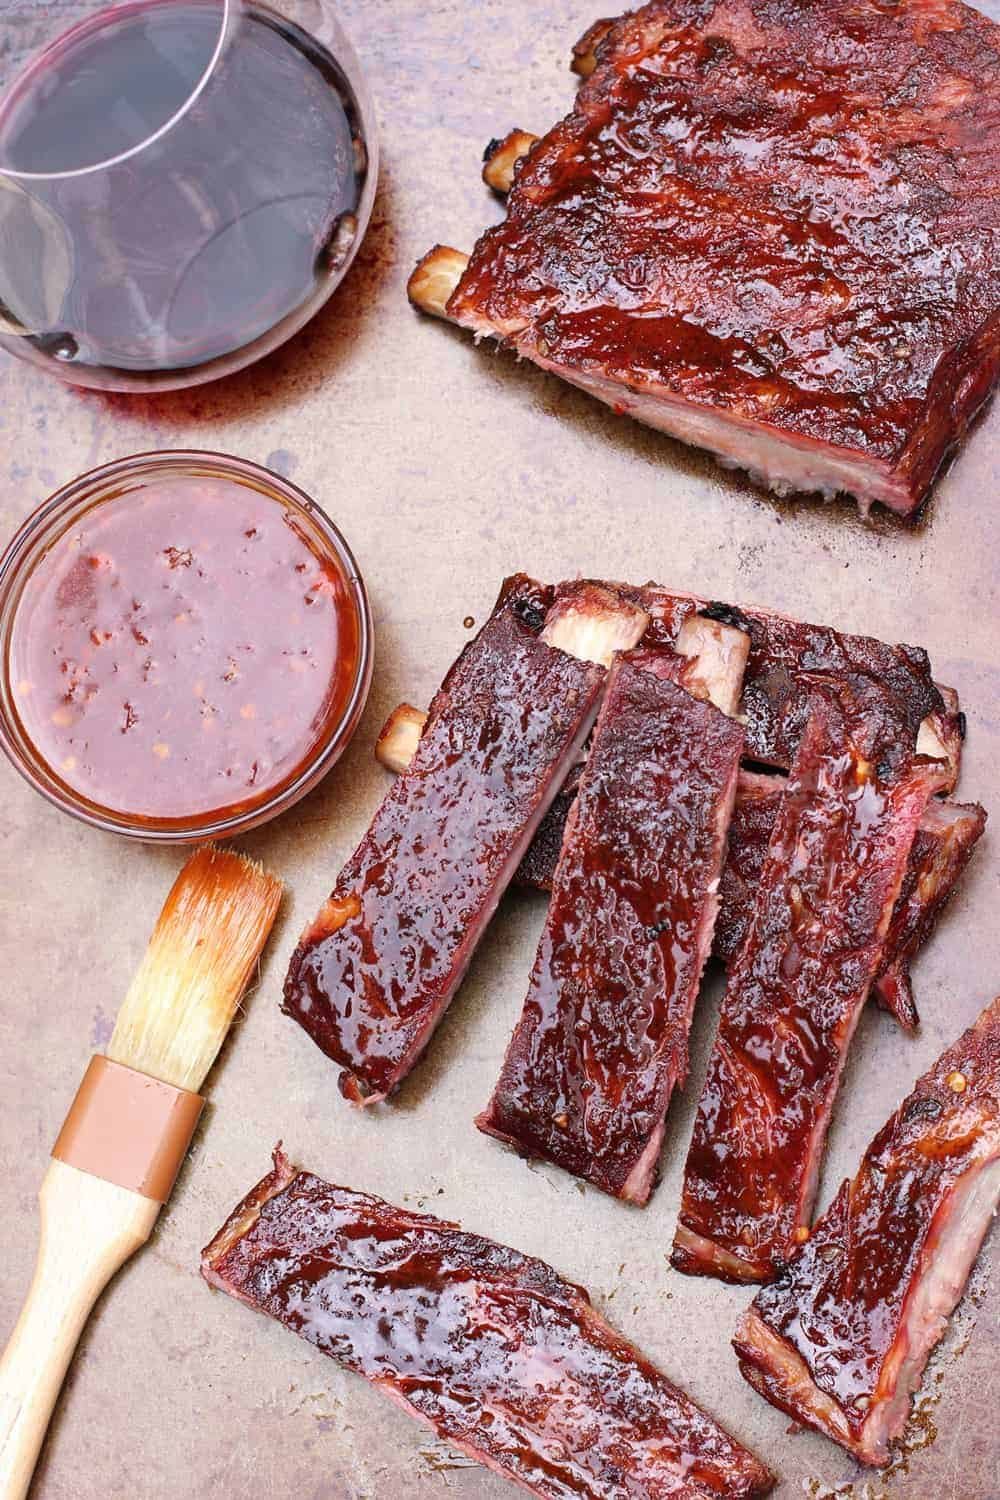 Asian Spiced Ribs and Wine Pairing